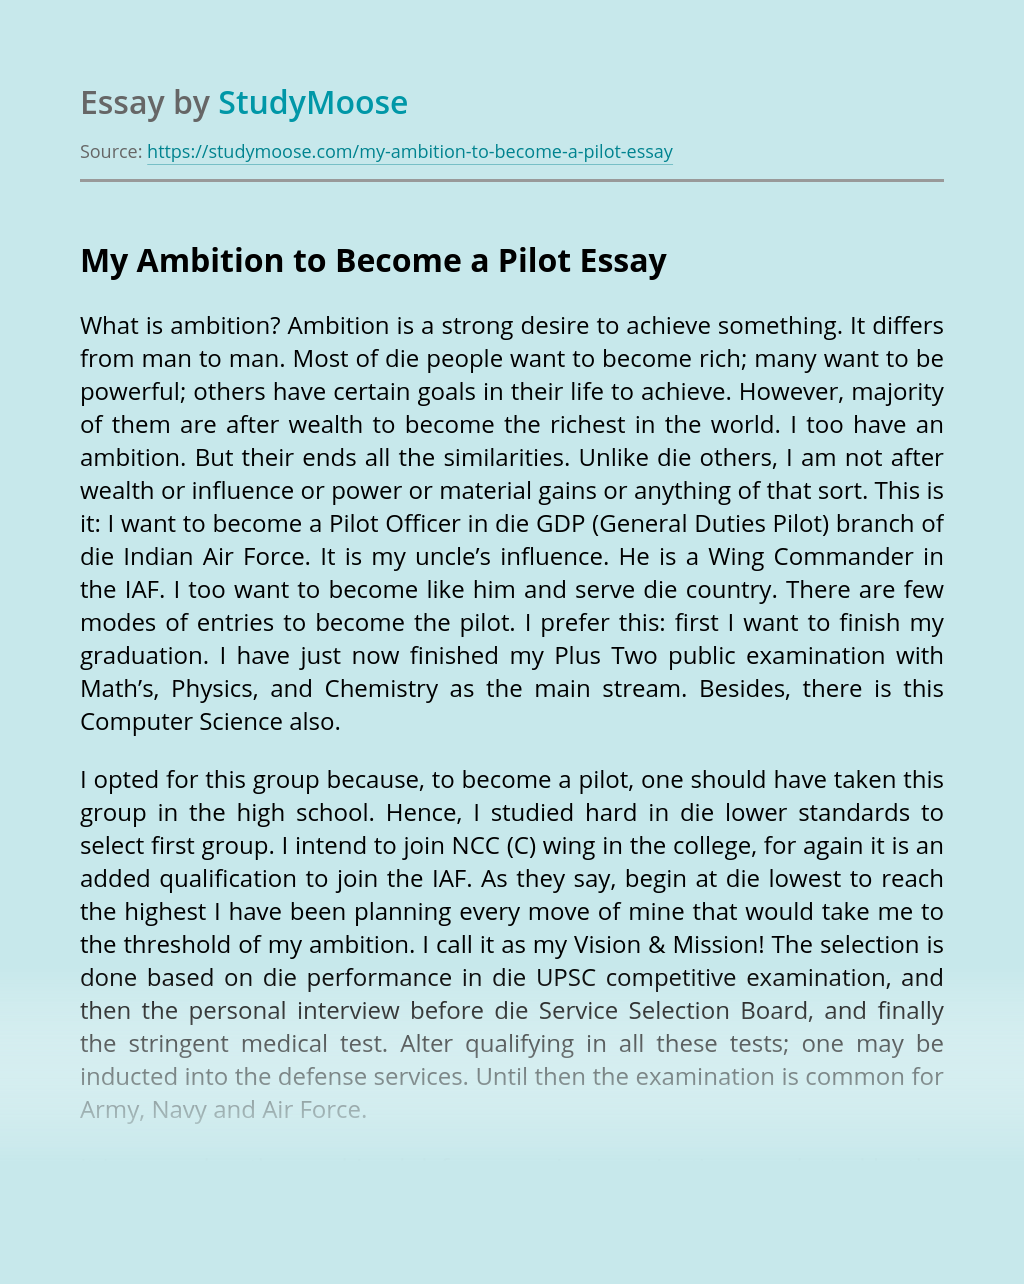 My Ambition to Become a Pilot